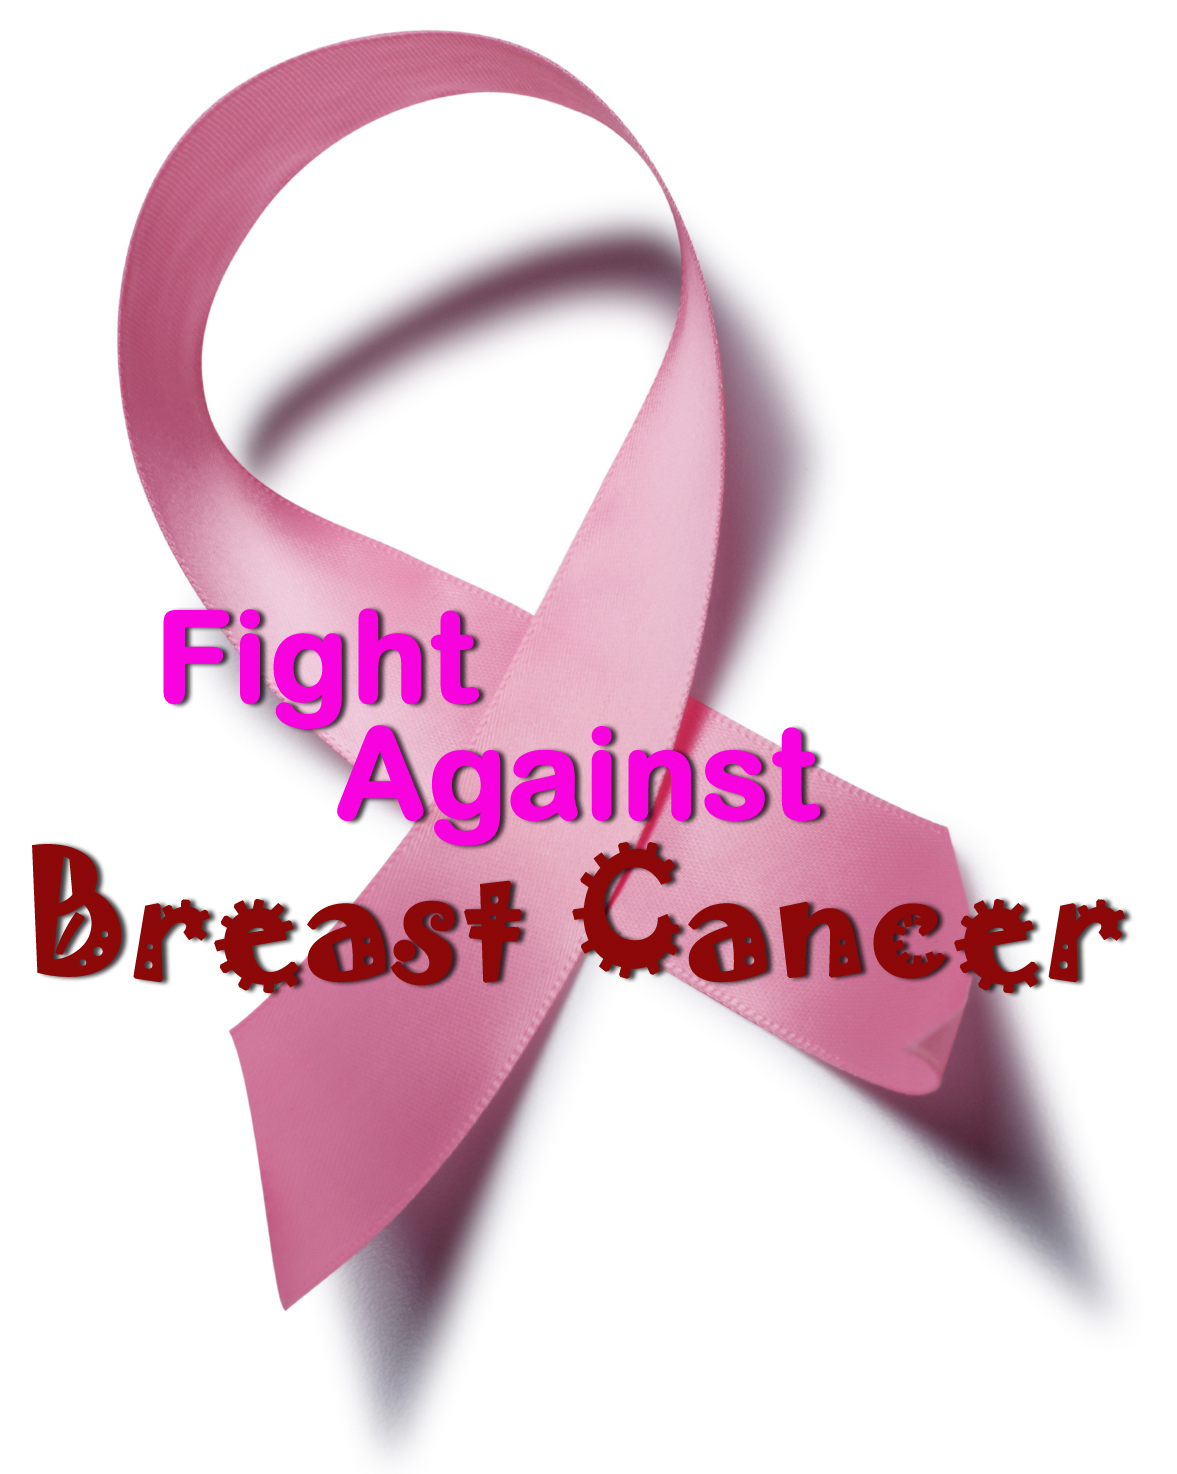 awareness about breast cancer